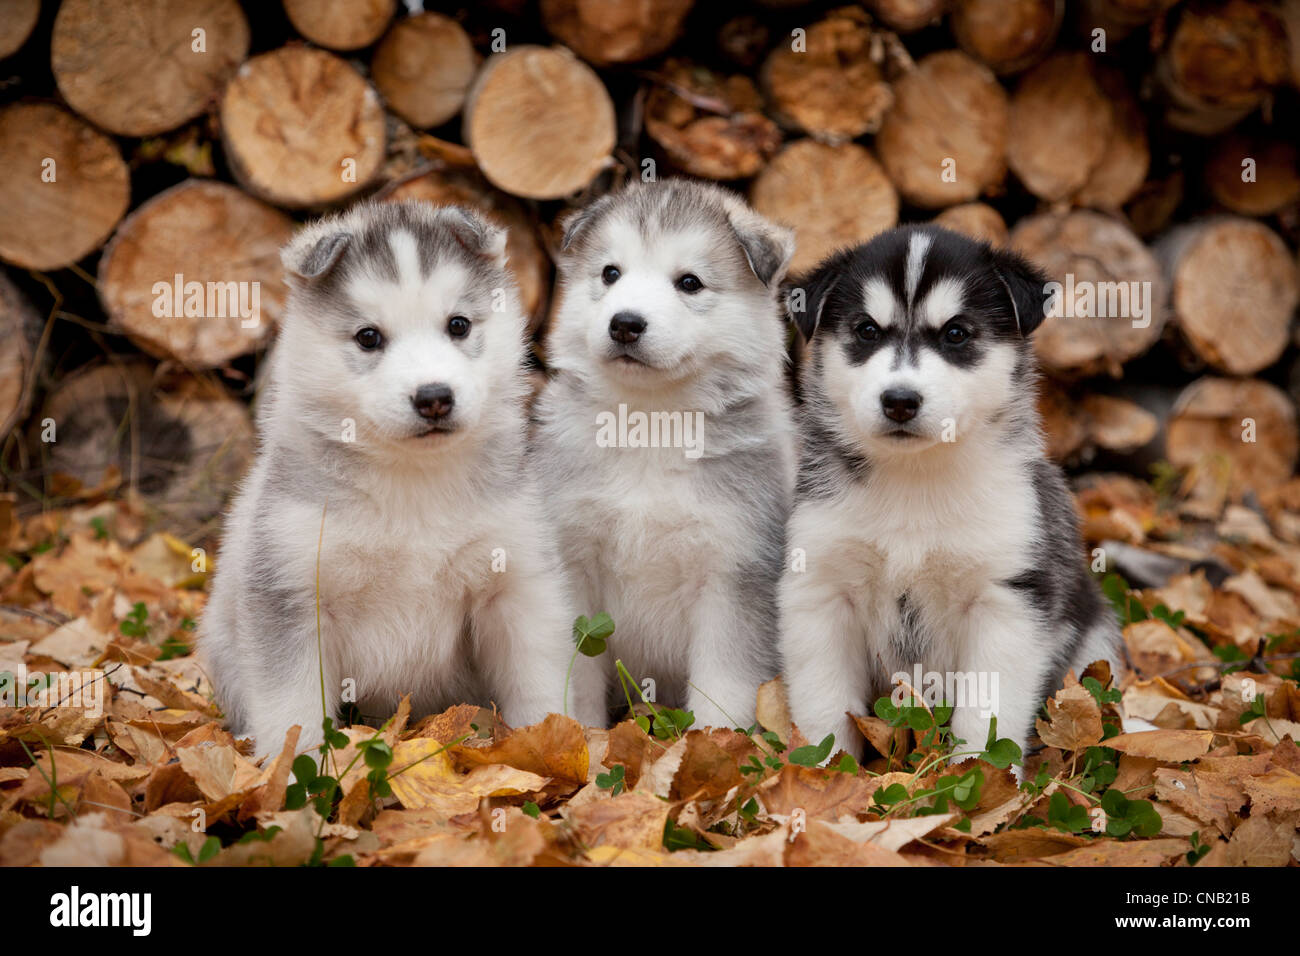 Puppies In Fall Wallpaper Siberian Husky Puppies Sit In Autumn Leaves In Front Of A